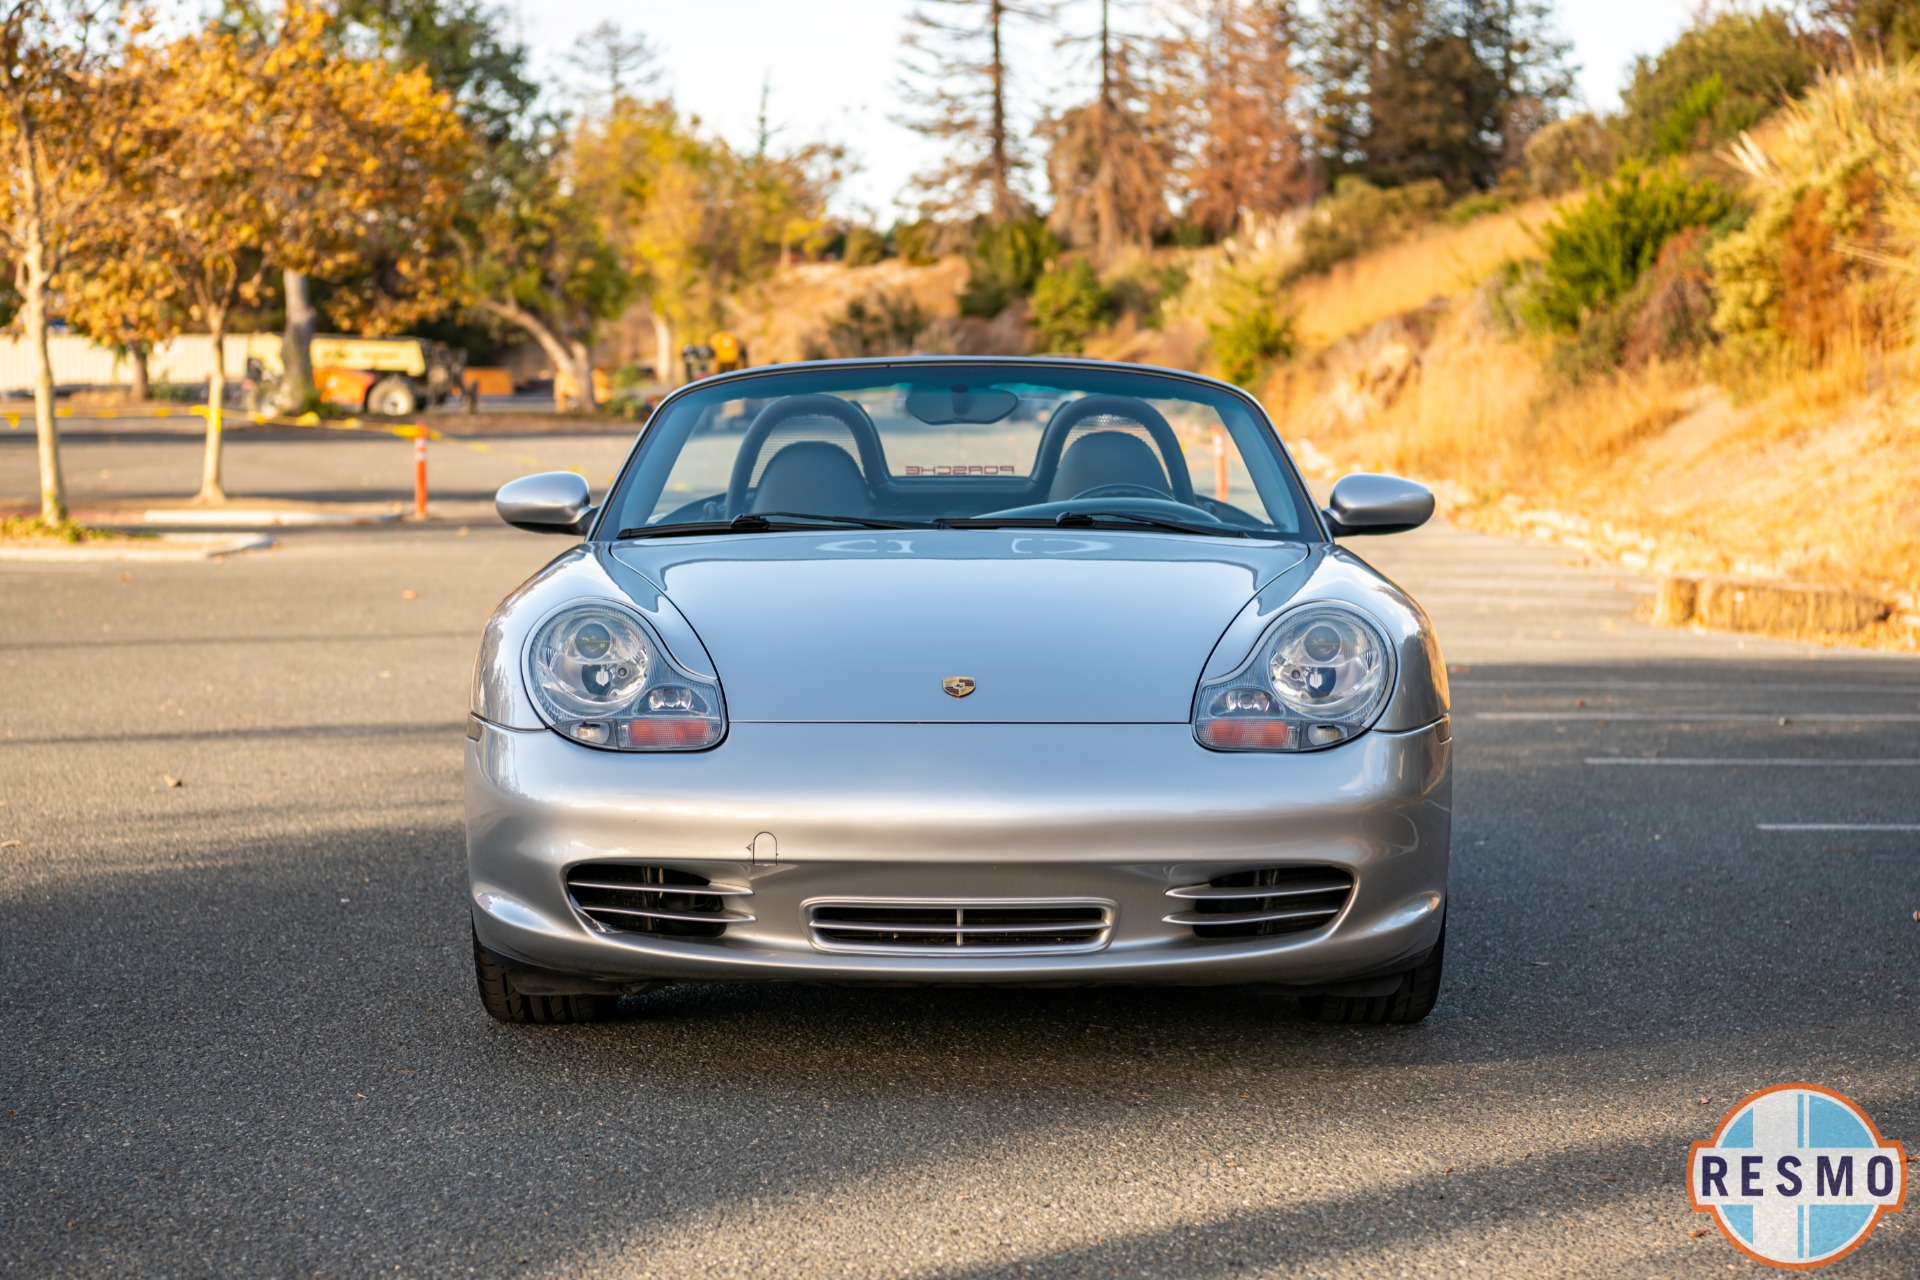 Used 2003 Porsche Boxster S Used 2003 Porsche Boxster S for sale Sold at Response Motors in Mountain View CA 2